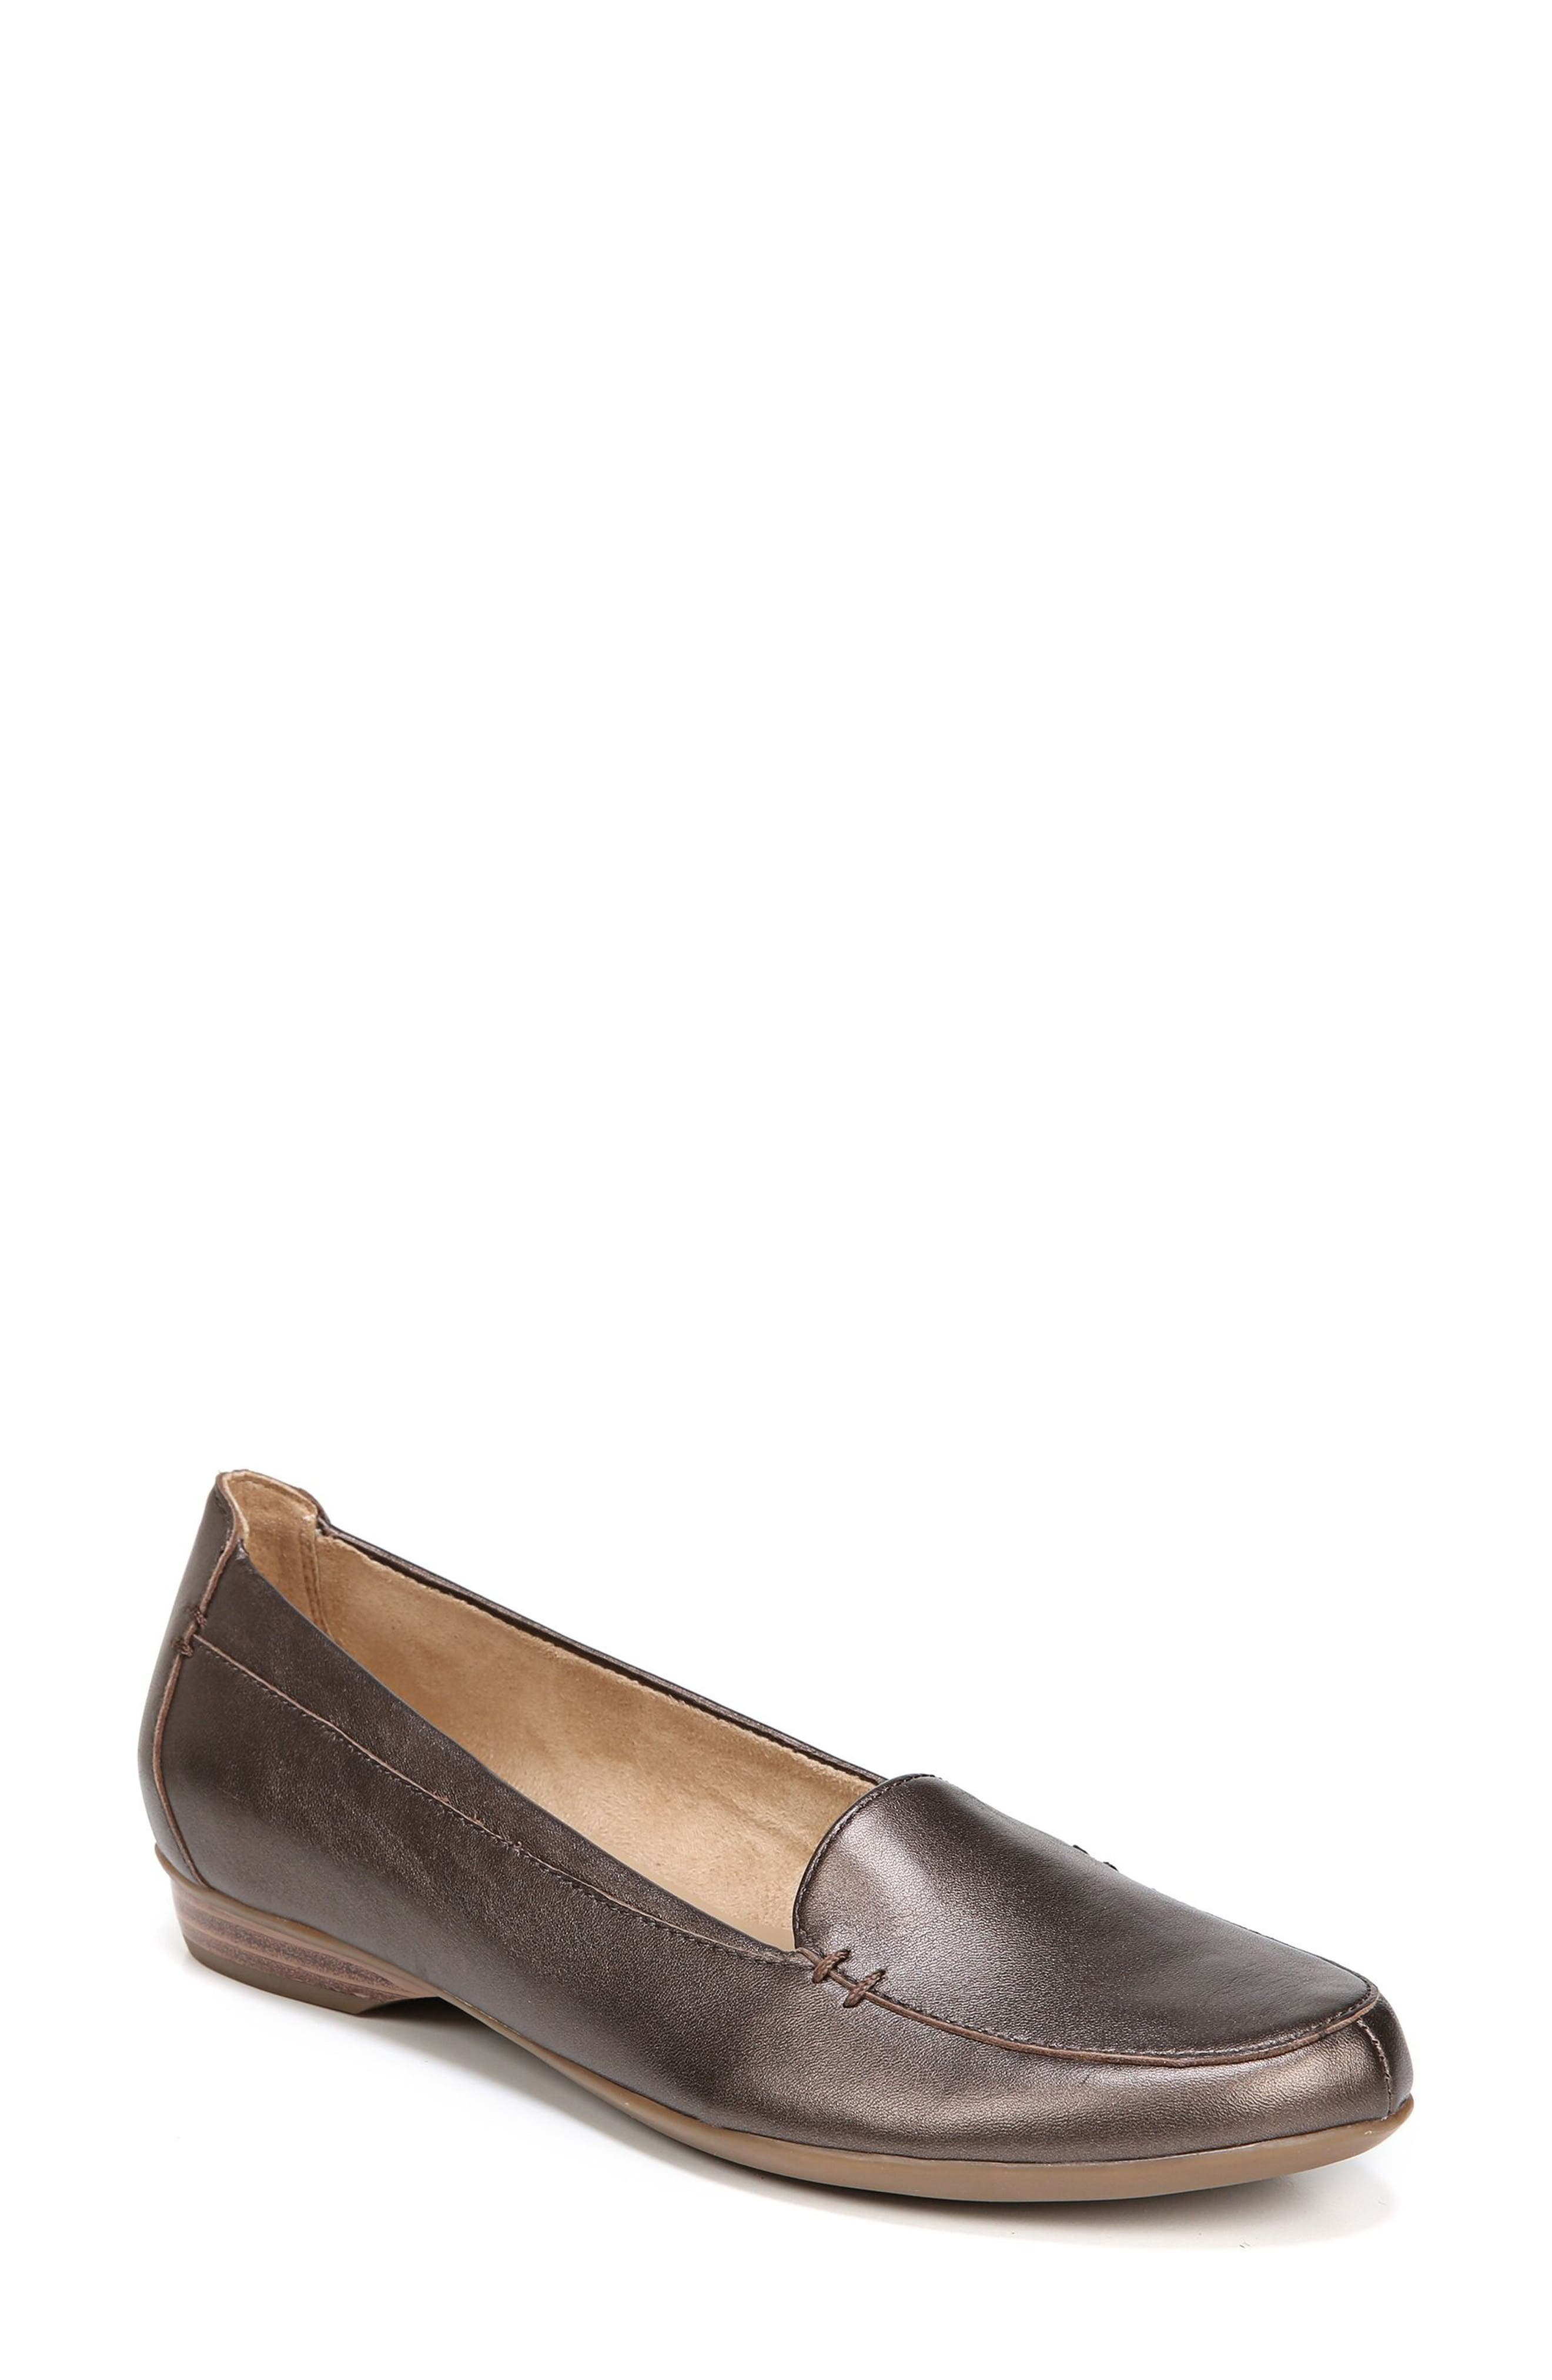 'Saban' Leather Loafer,                             Main thumbnail 1, color,                             BROWN BRONZE LEATHER